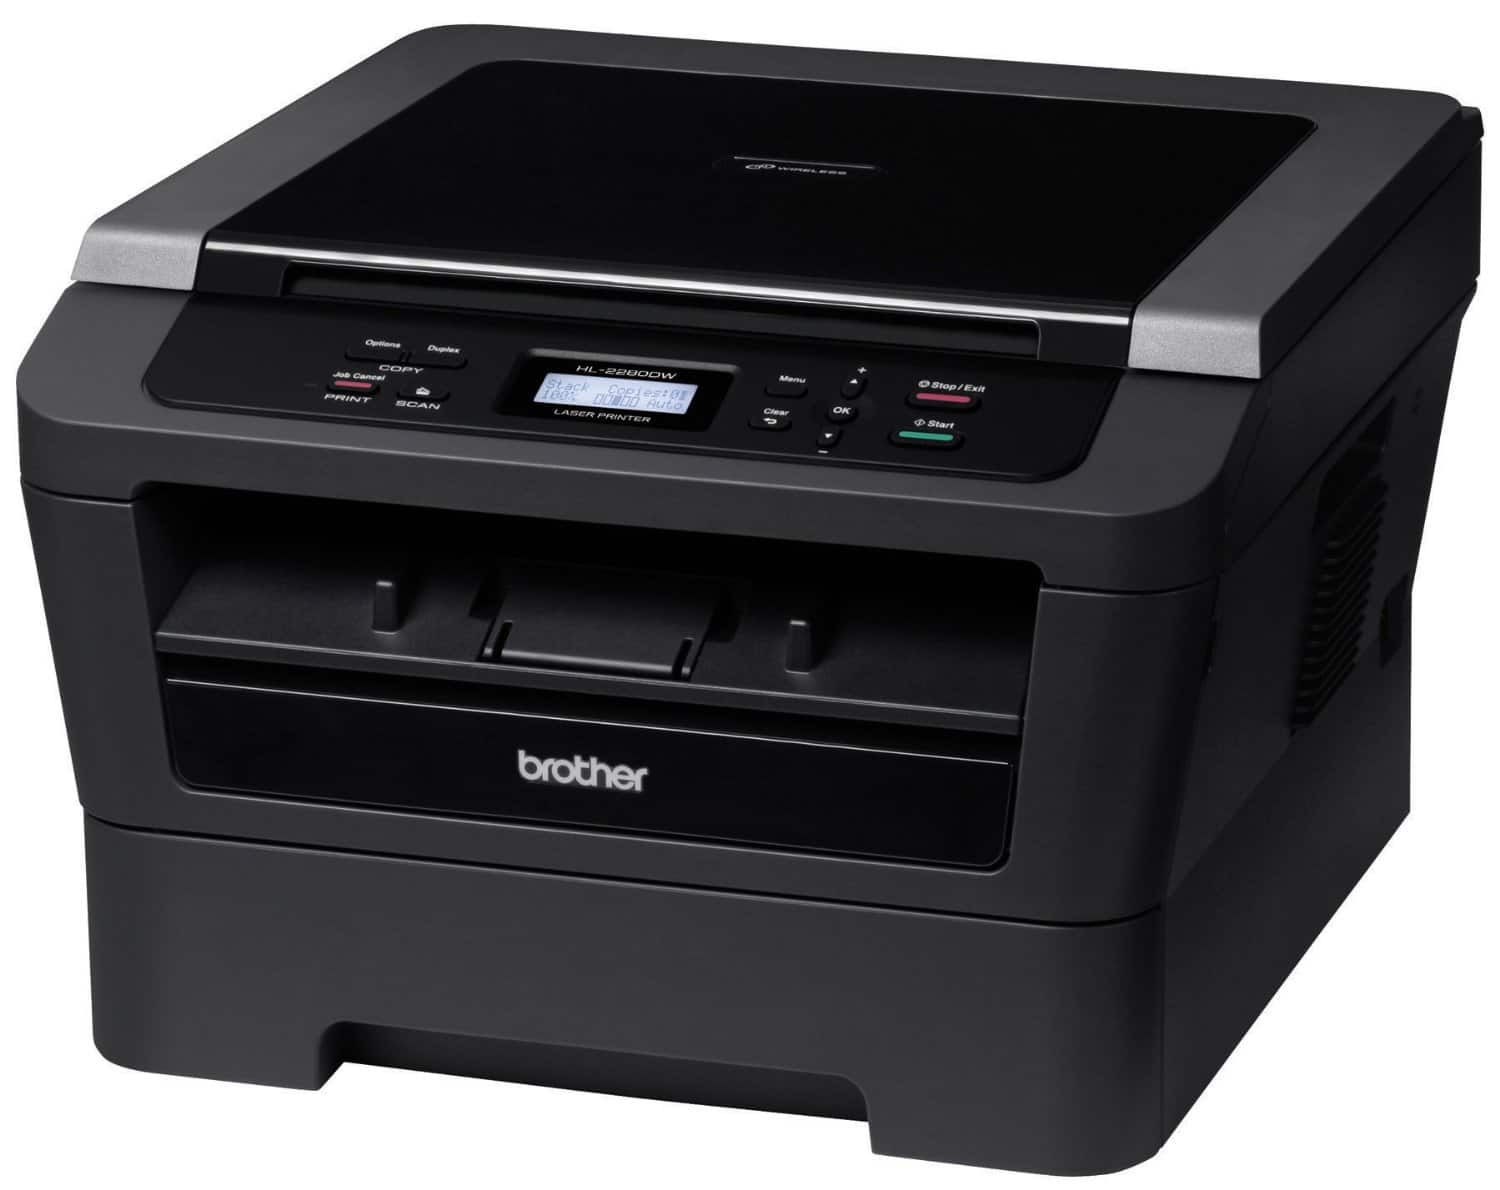 Brother HL-2280DW Laser Printer AIO $99.99 at Staples starts Aug 17th